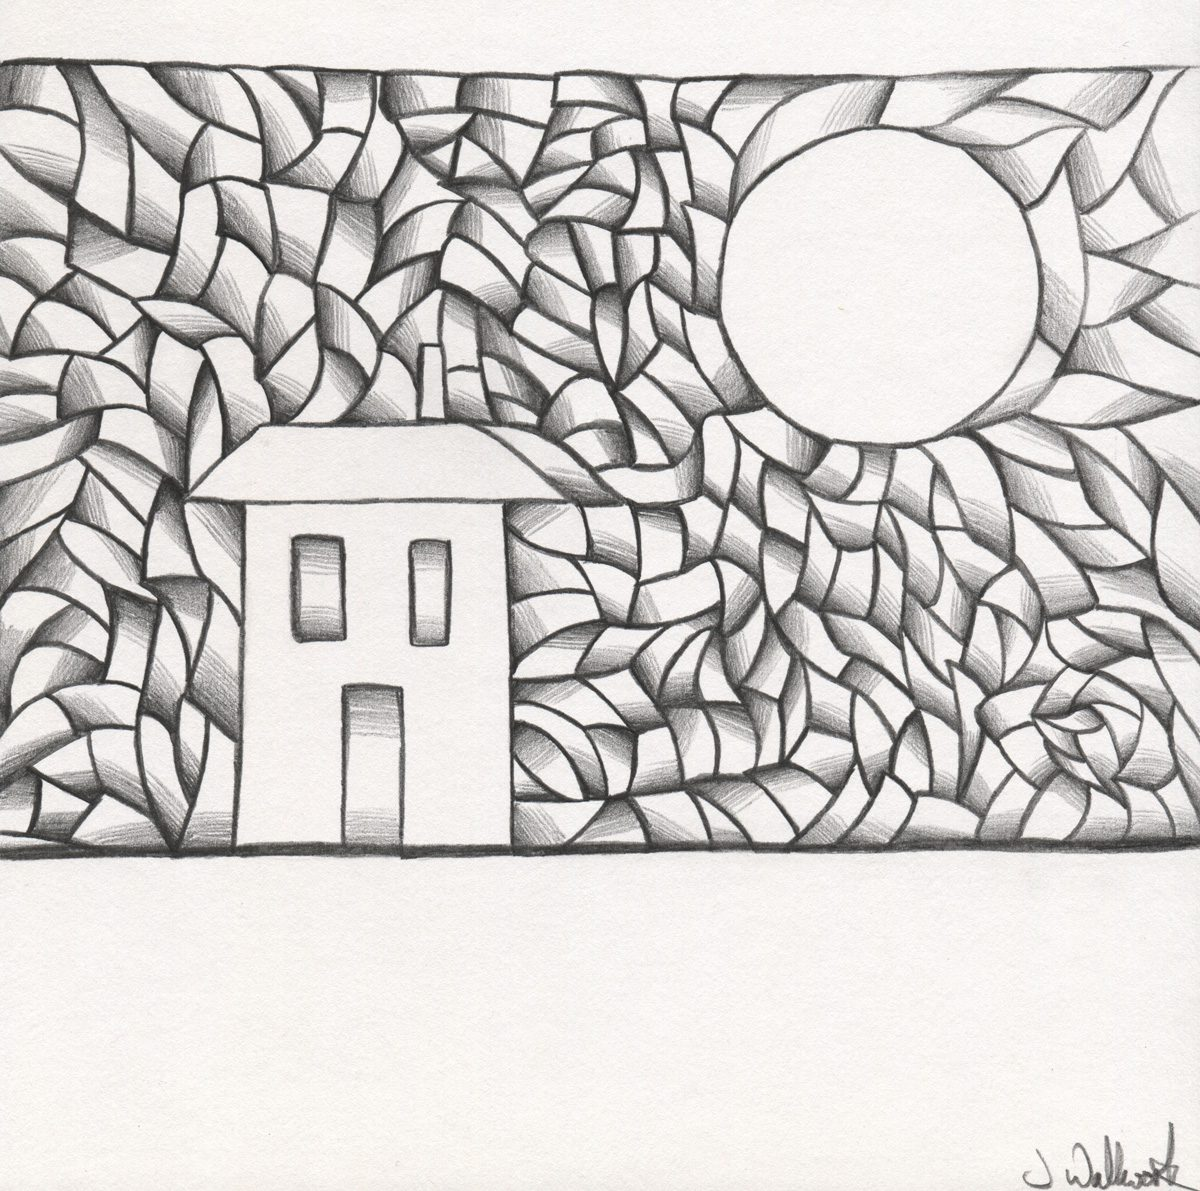 The image shows a piece of artwork by Jina Wallwork. It is a drawing of a house. Stylistically this piece of artwork has links with expressionism and the images by children.